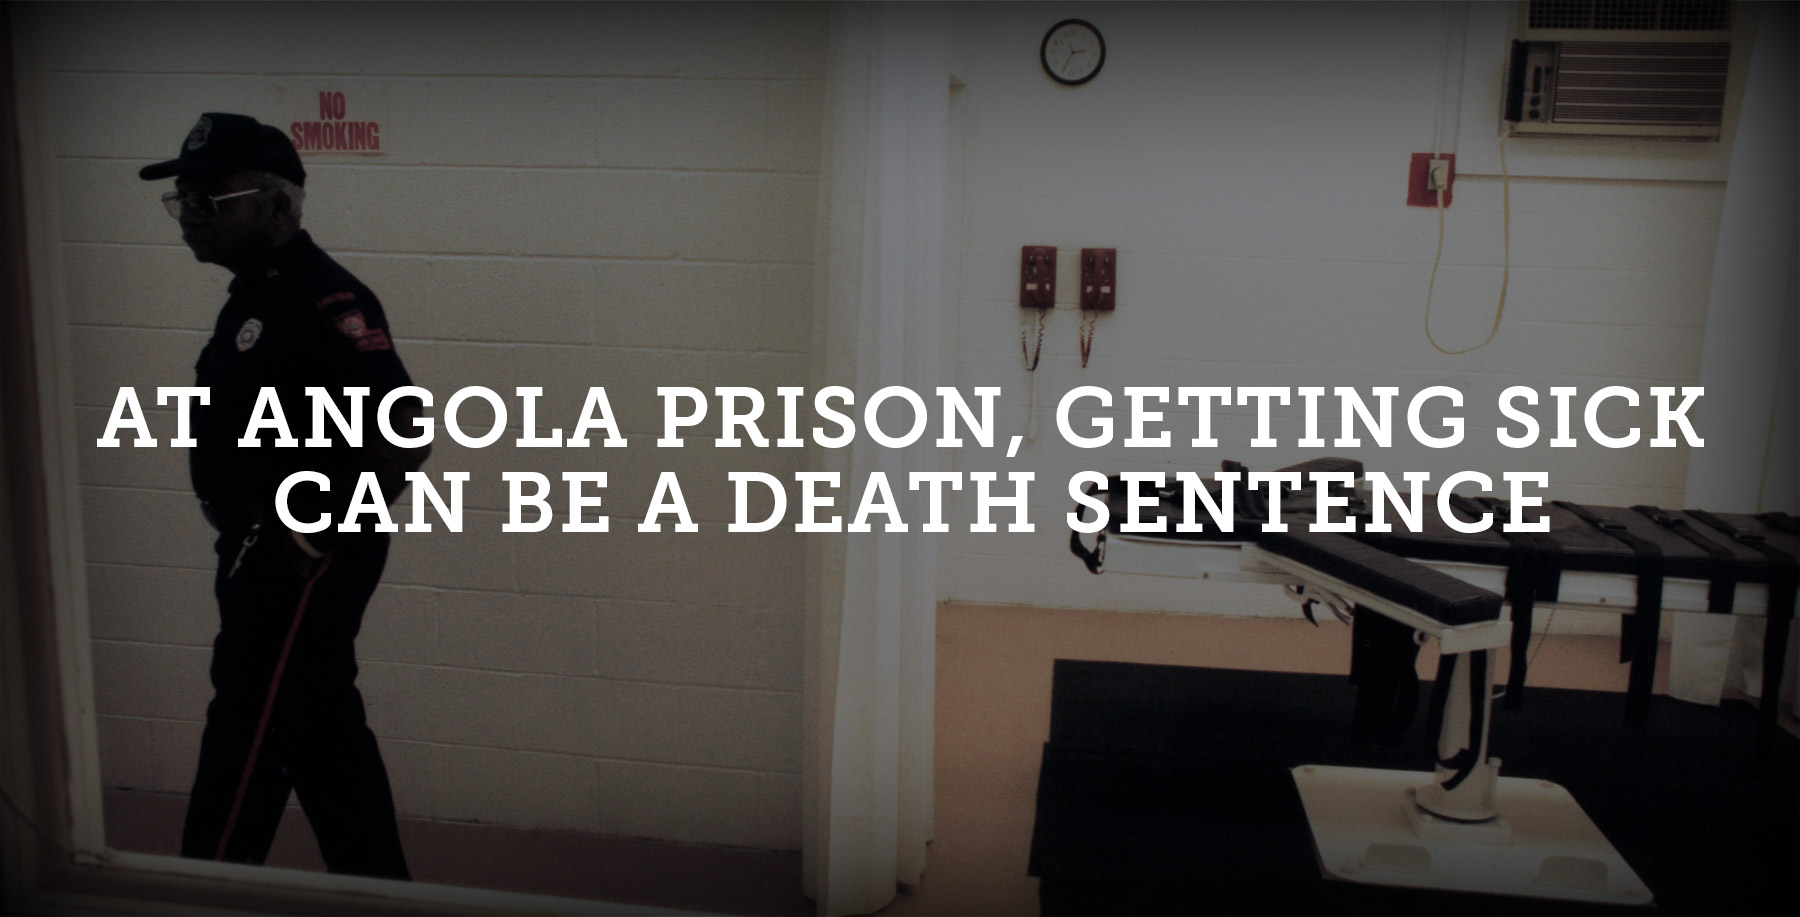 At Angola Prison, Getting Sick Can Be a Death Sentence